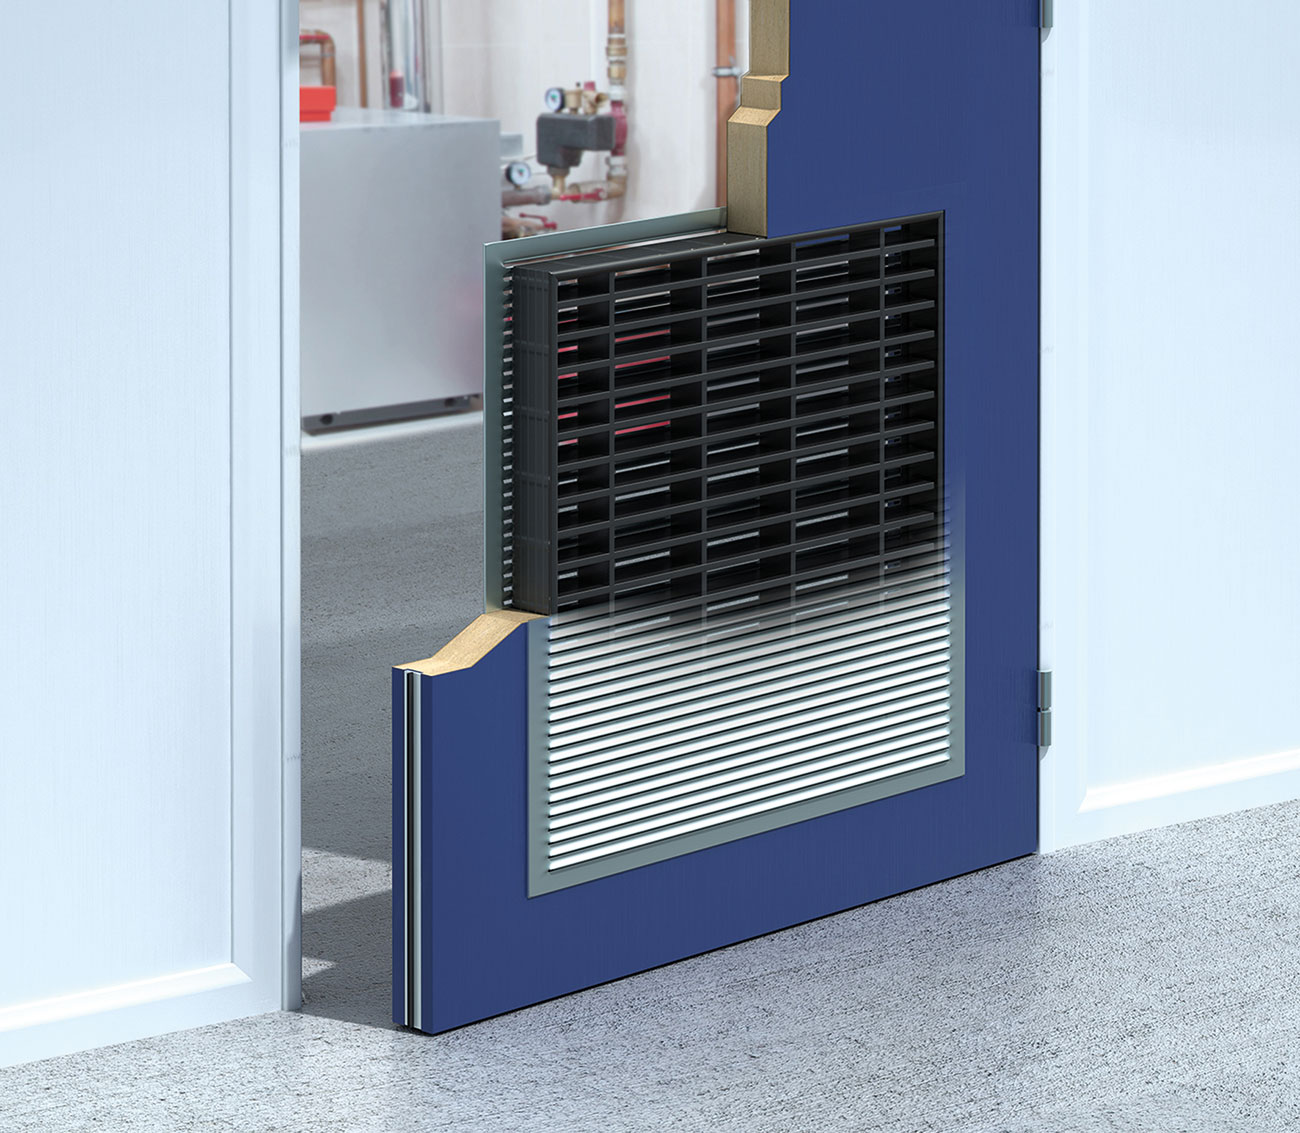 Cutaway view of fire door with intumescent grille.